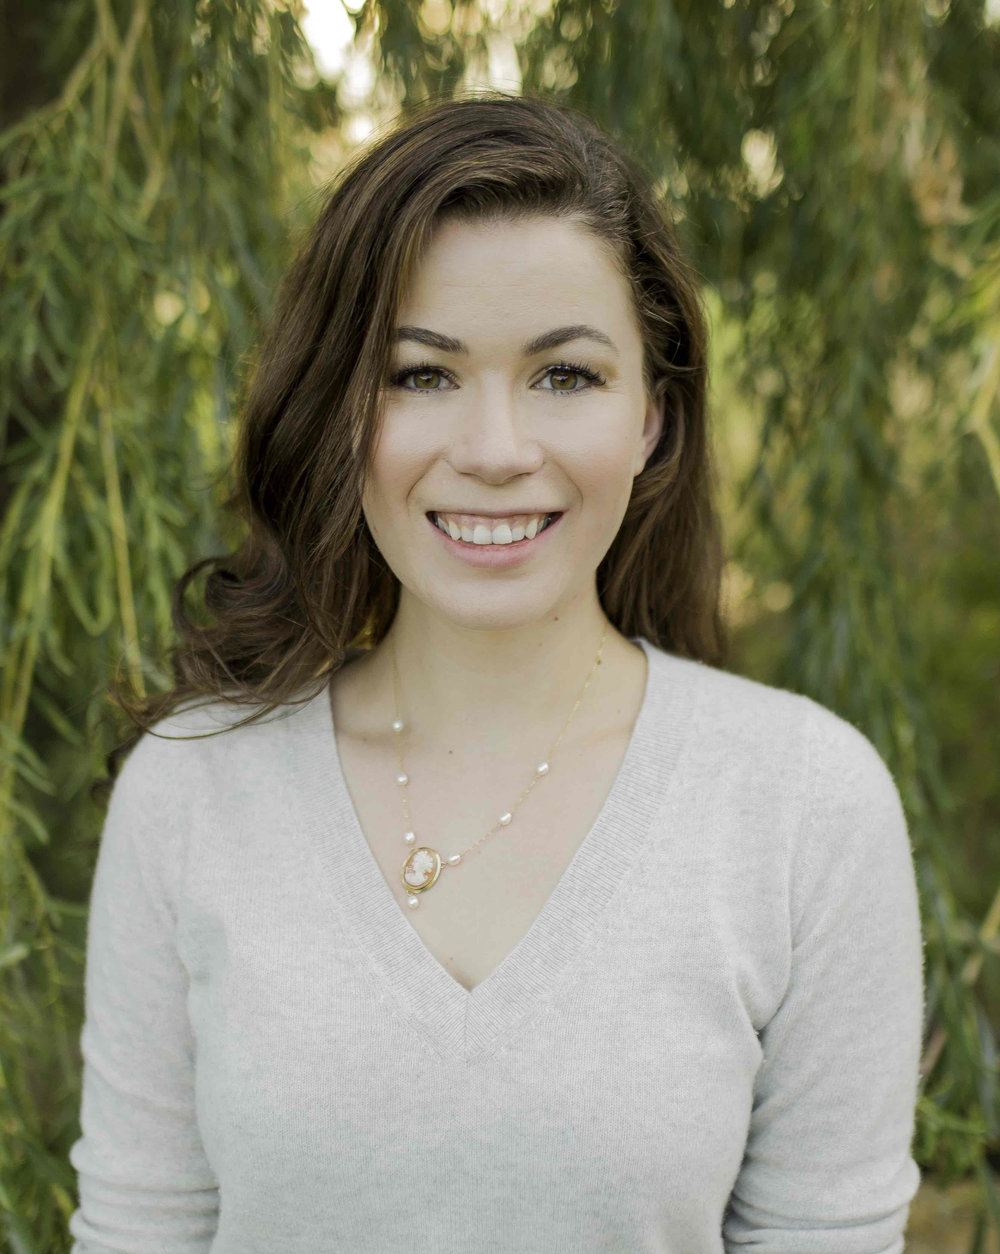 - Meet Rachael Wright. She's a writer, mother, and tea-obsessed devotee who believes in the power of the written word and the healing that can come from reading a good book.